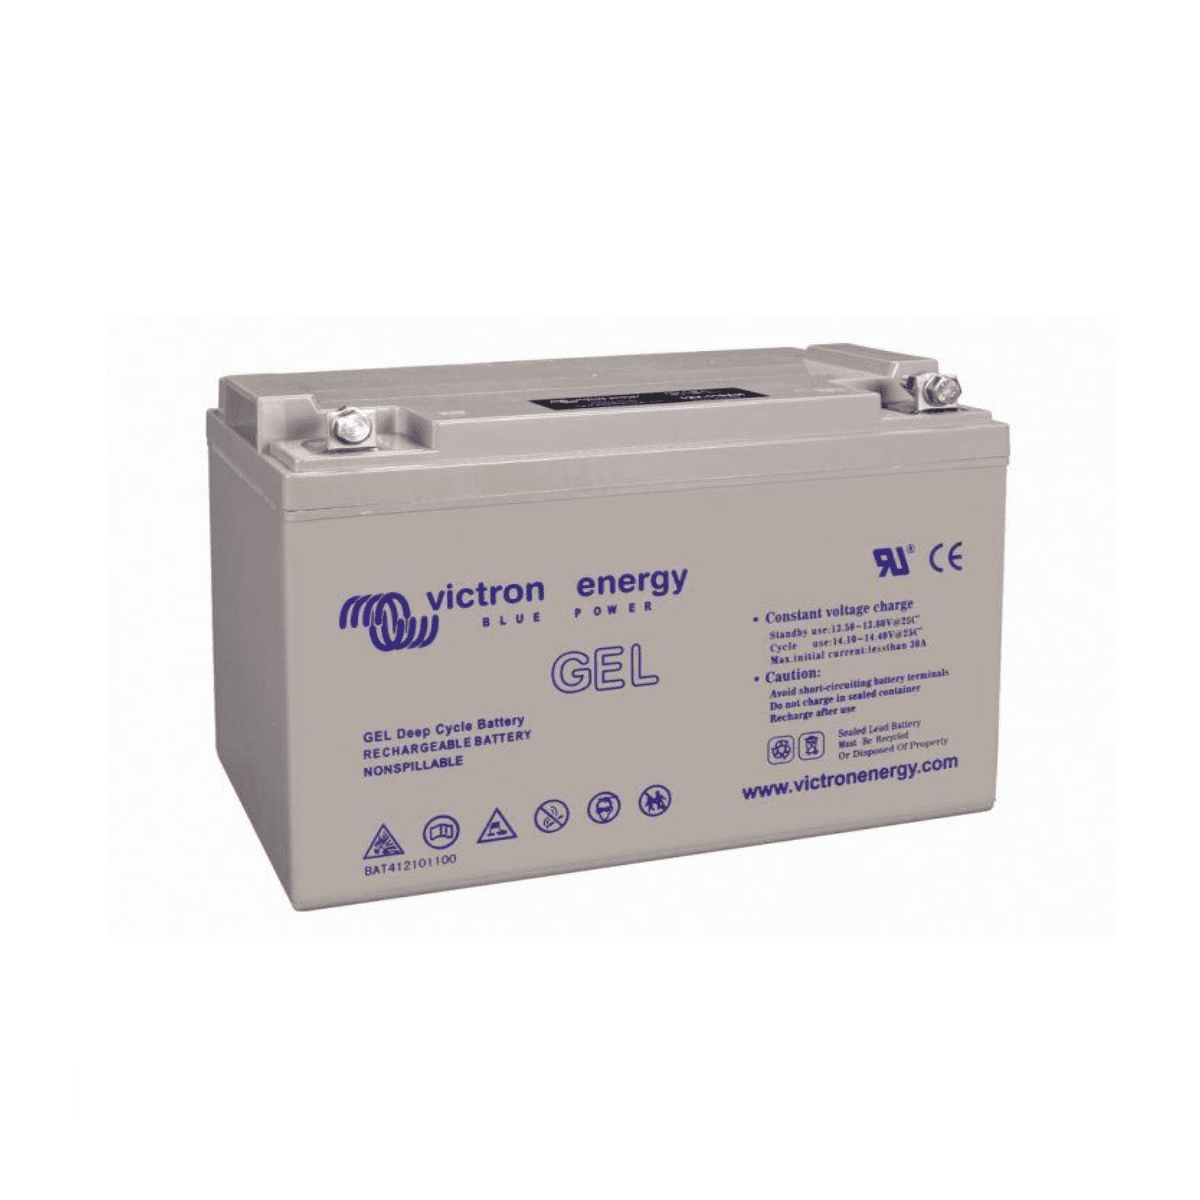 Victron 12V 130Ah GEL Deep Cycle Battery on Sale